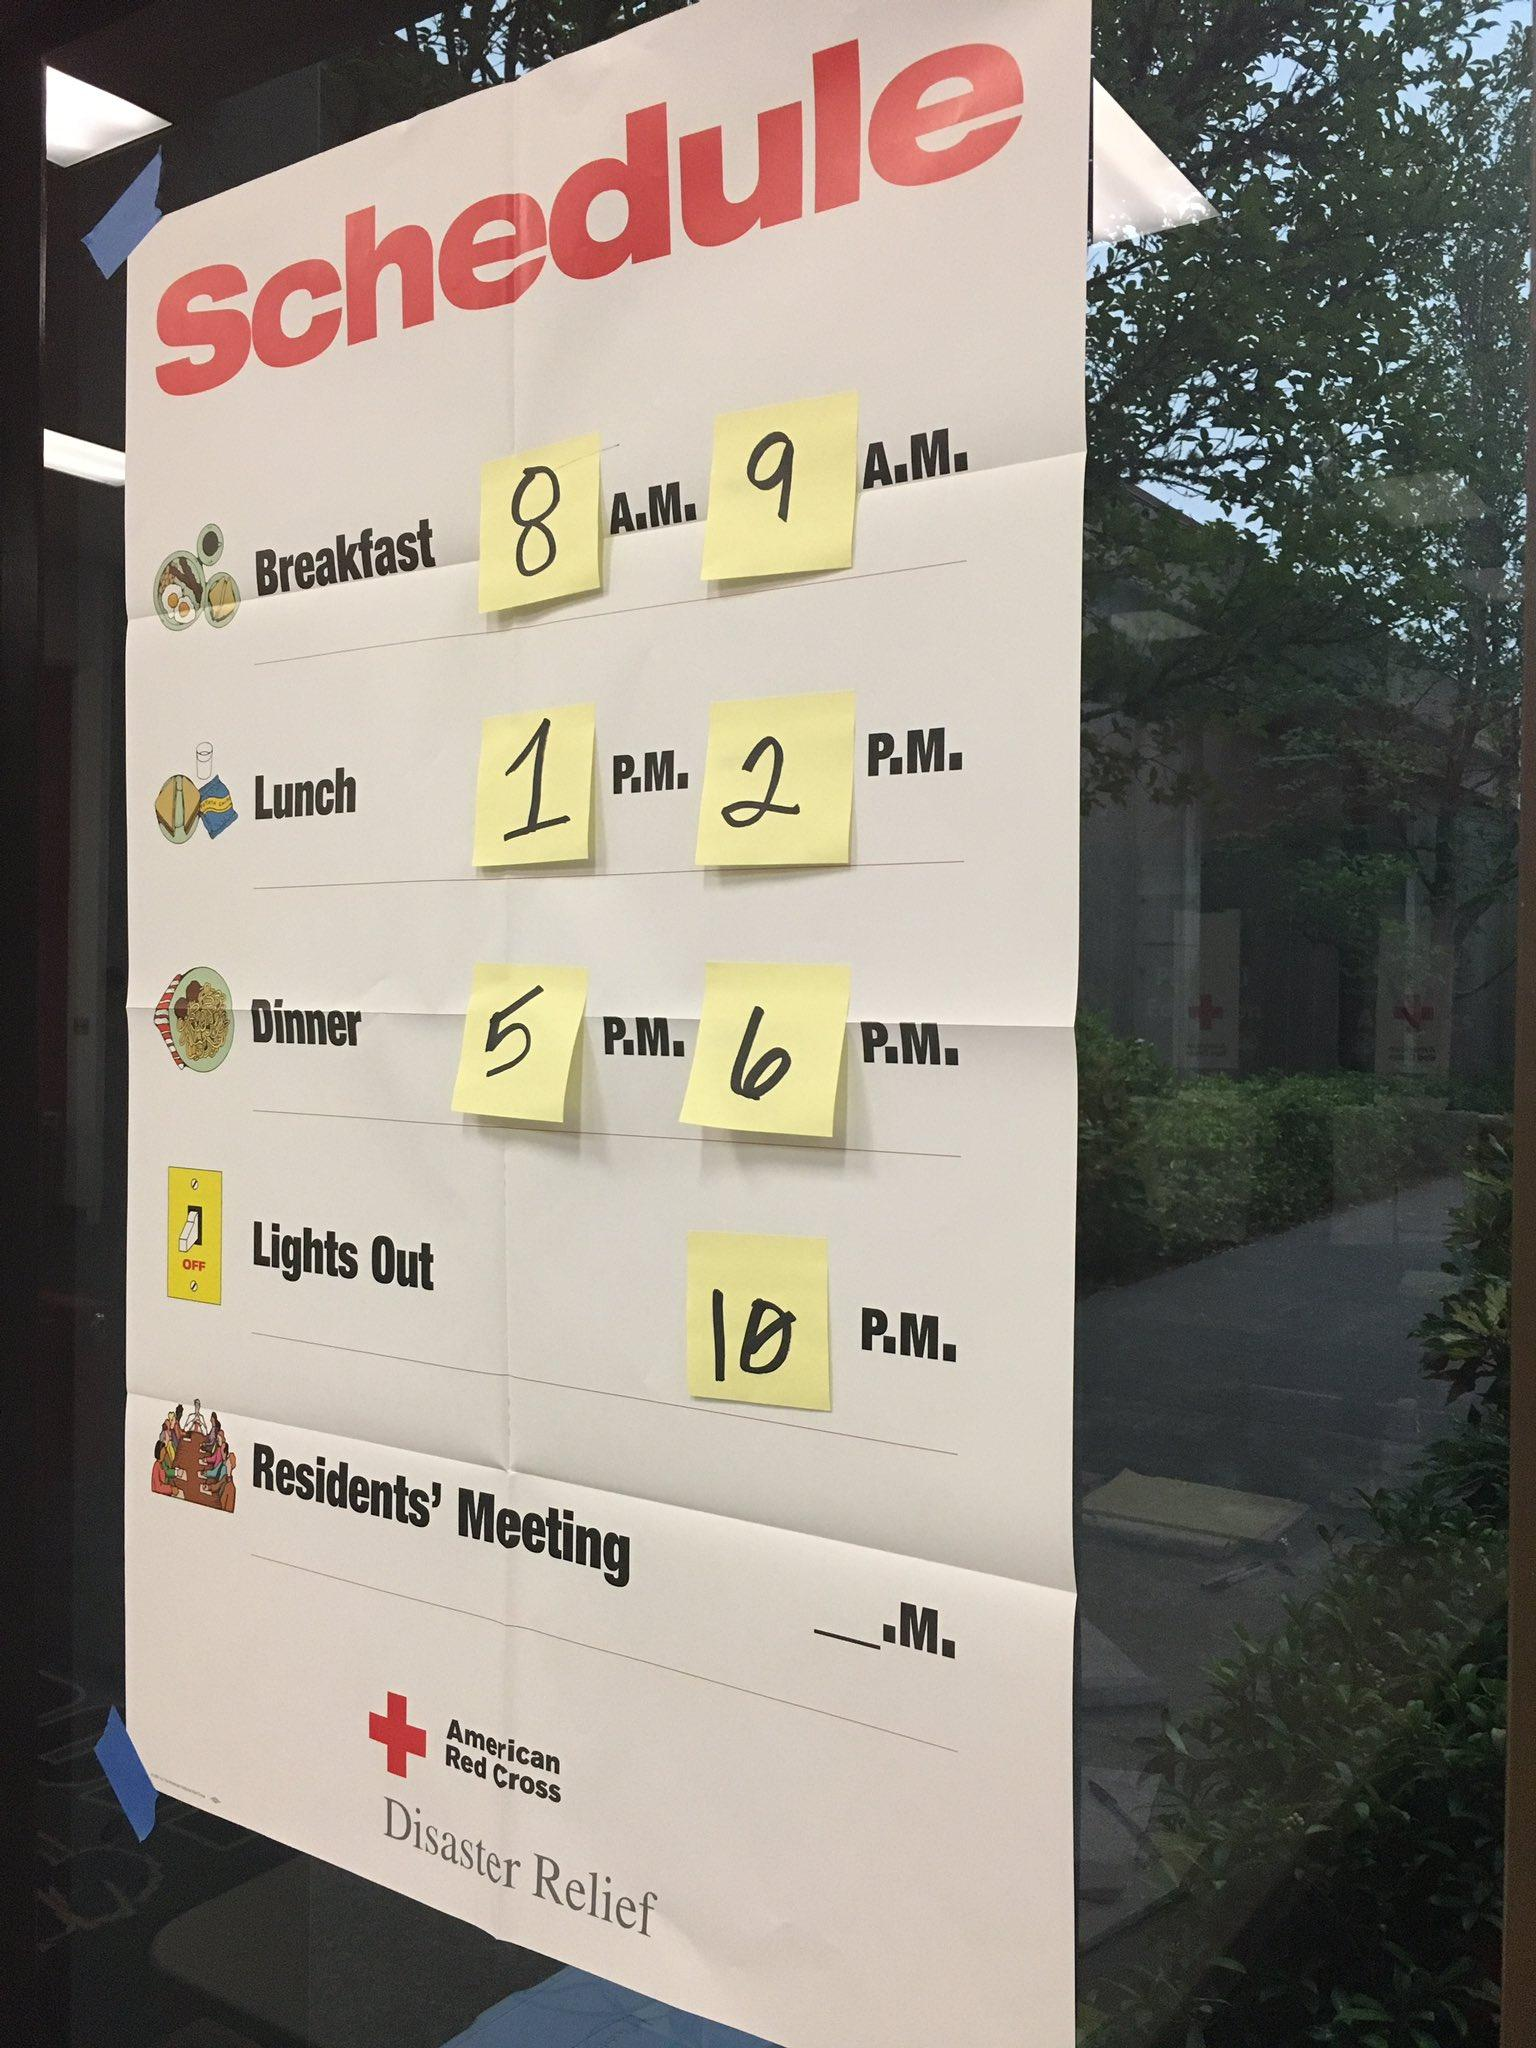 Tuesday, more homes were evacuated as the Eagle Creek Fire grew in the Columbia River Gorge. The Red Cross is opening shelters for evacuees. (SBG photo)